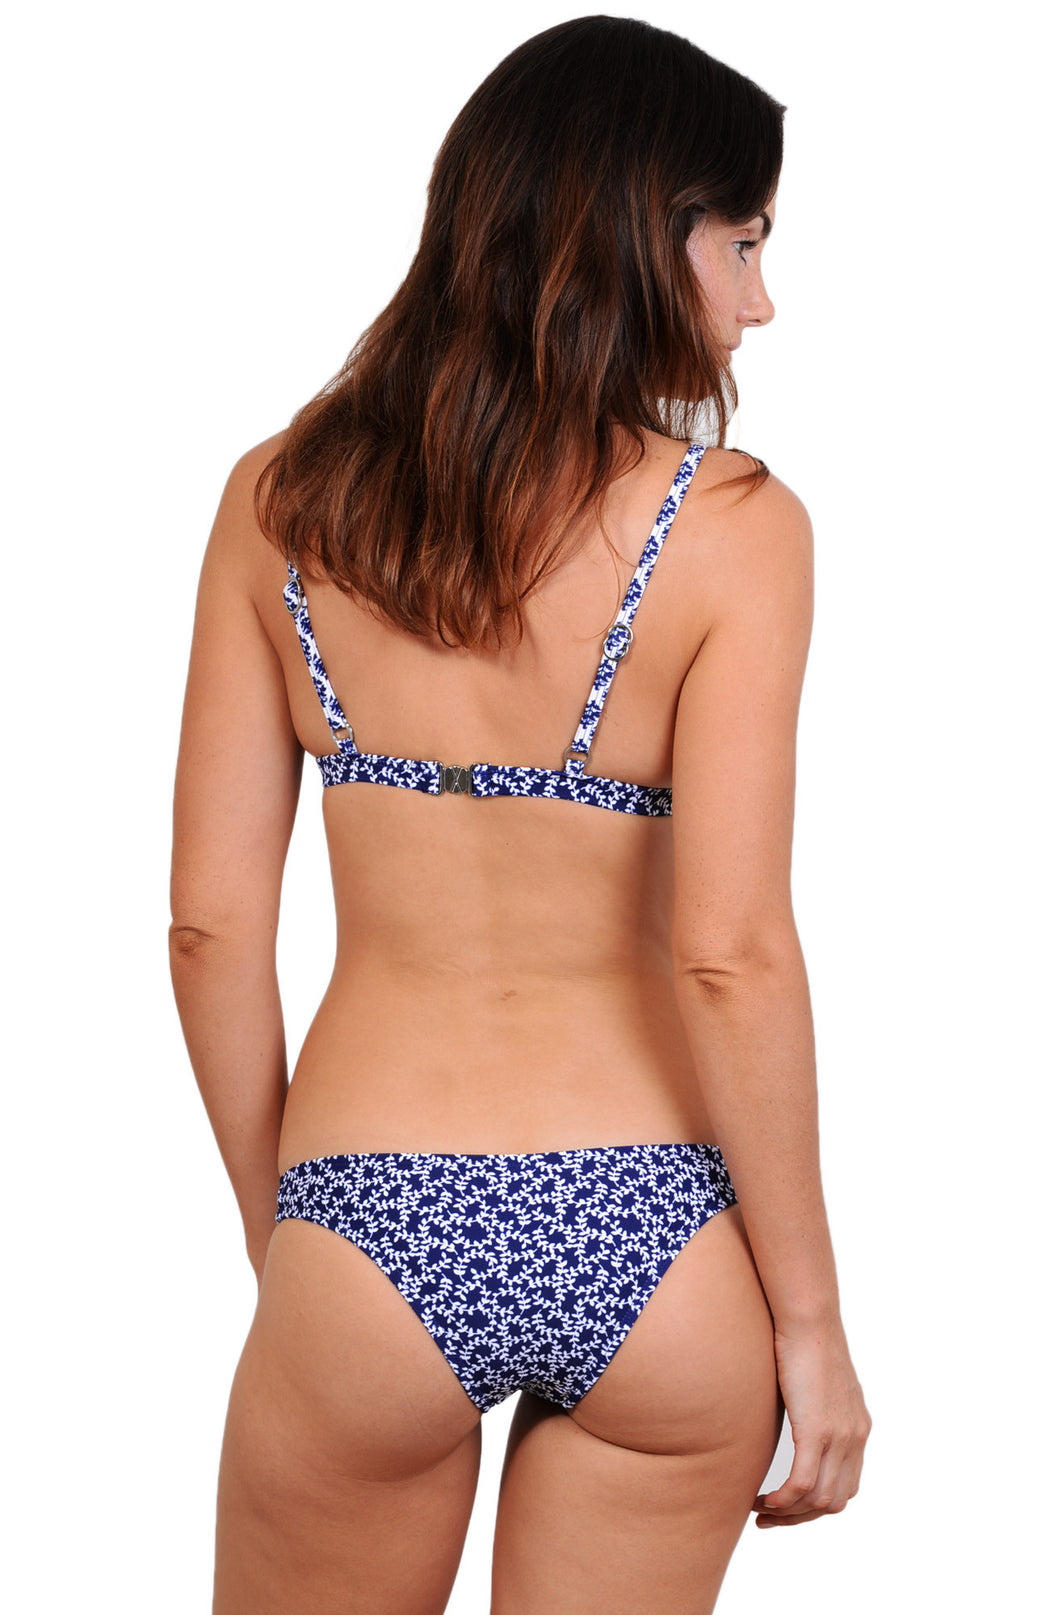 Features clip back, removable cups, adjustable straps